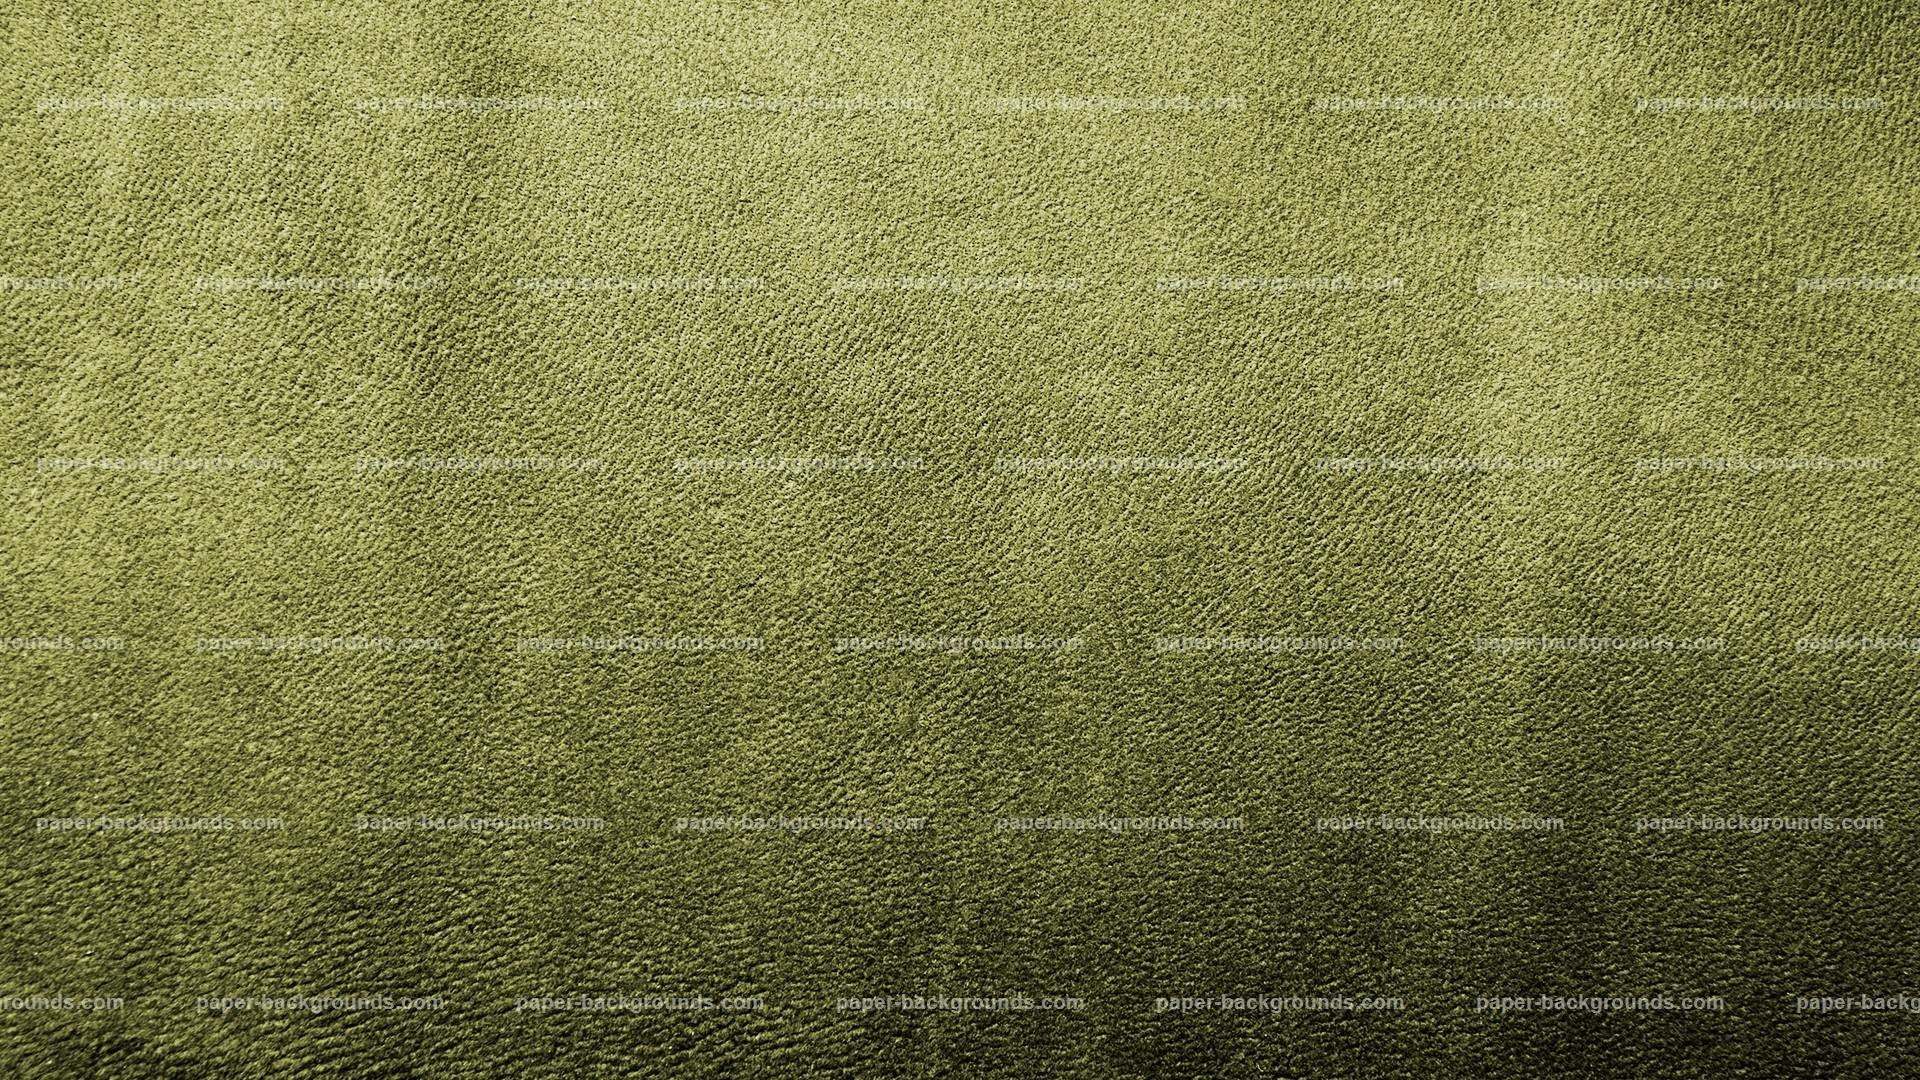 Army Green Soft Leather Background   Paper Backgrounds